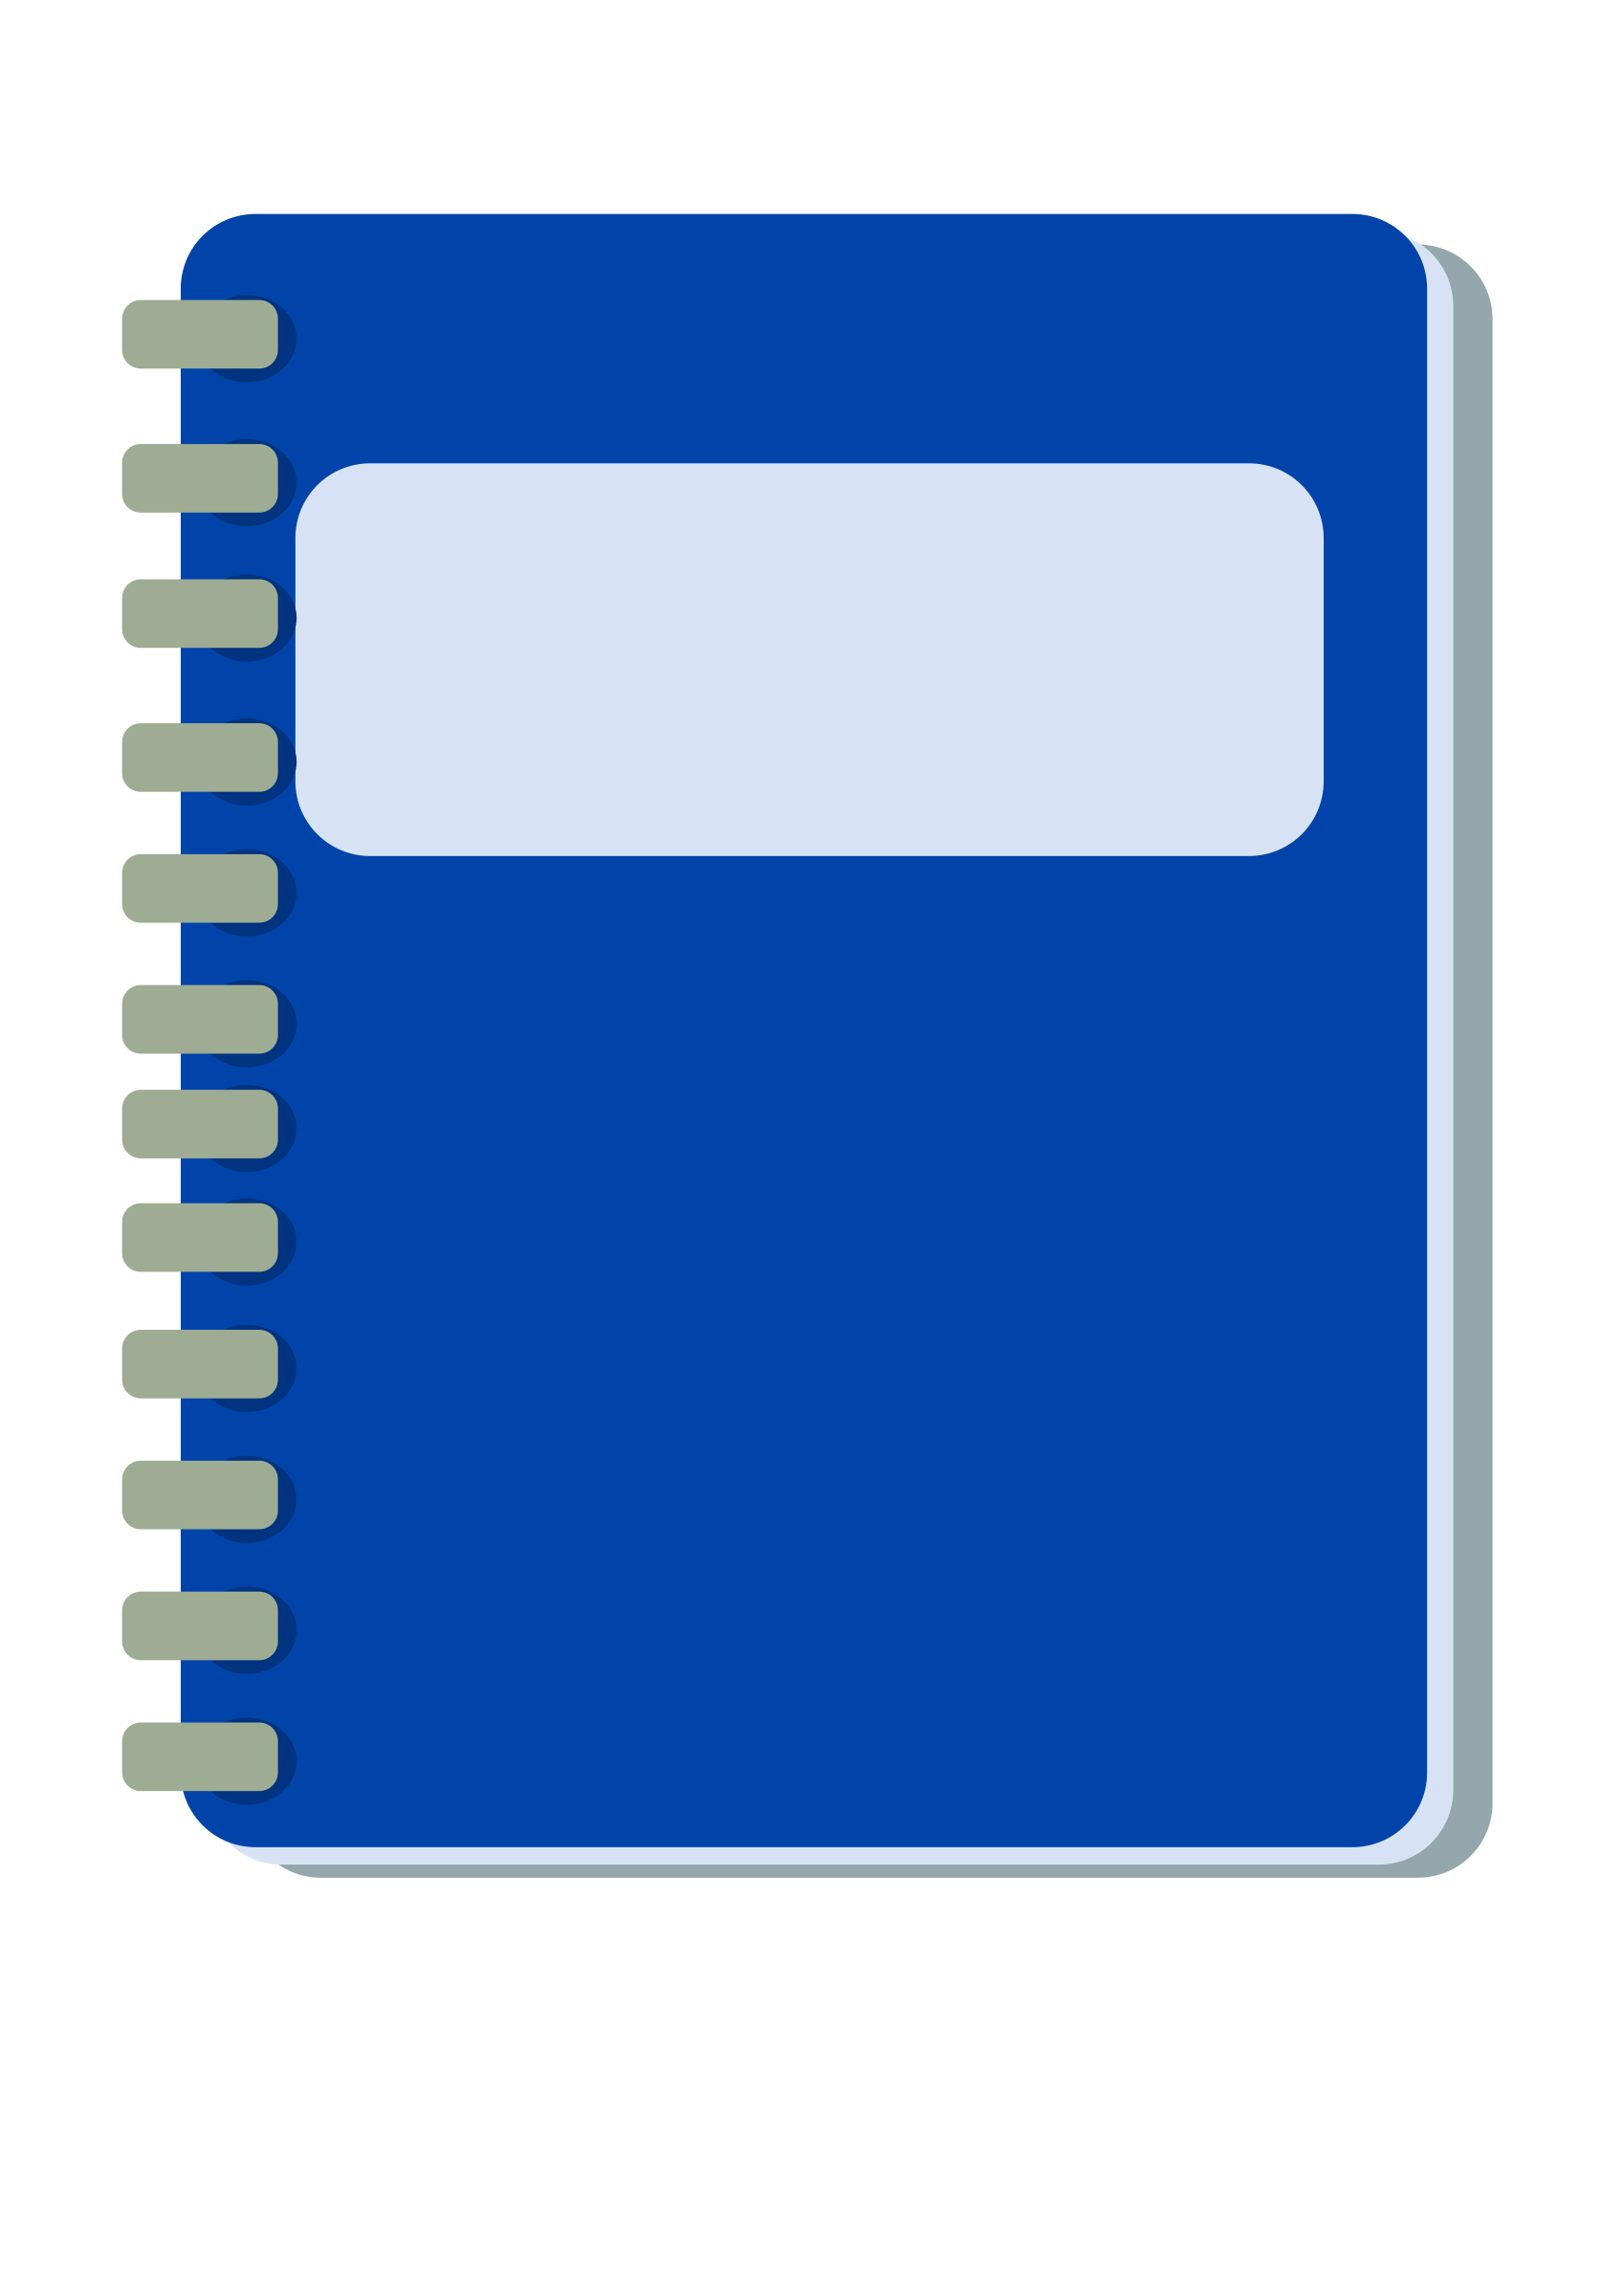 Notepad by athithya